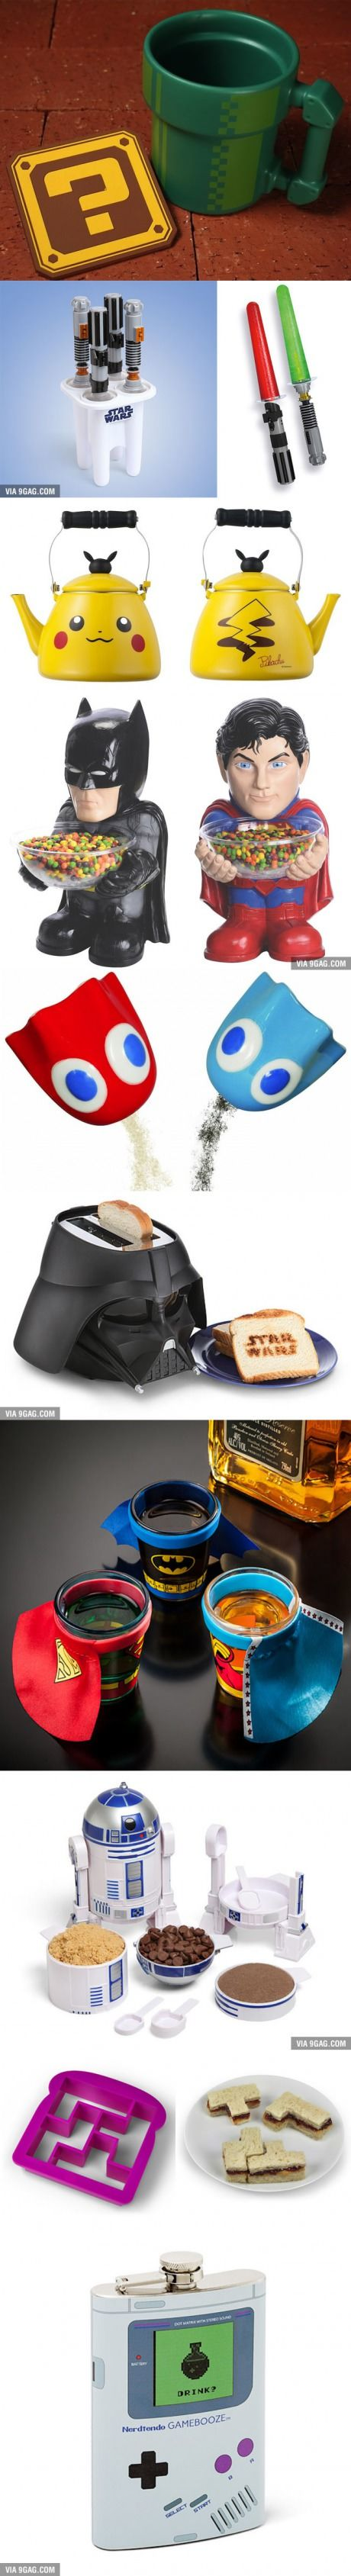 10 Things Geek Must Have In Their Kitchen.